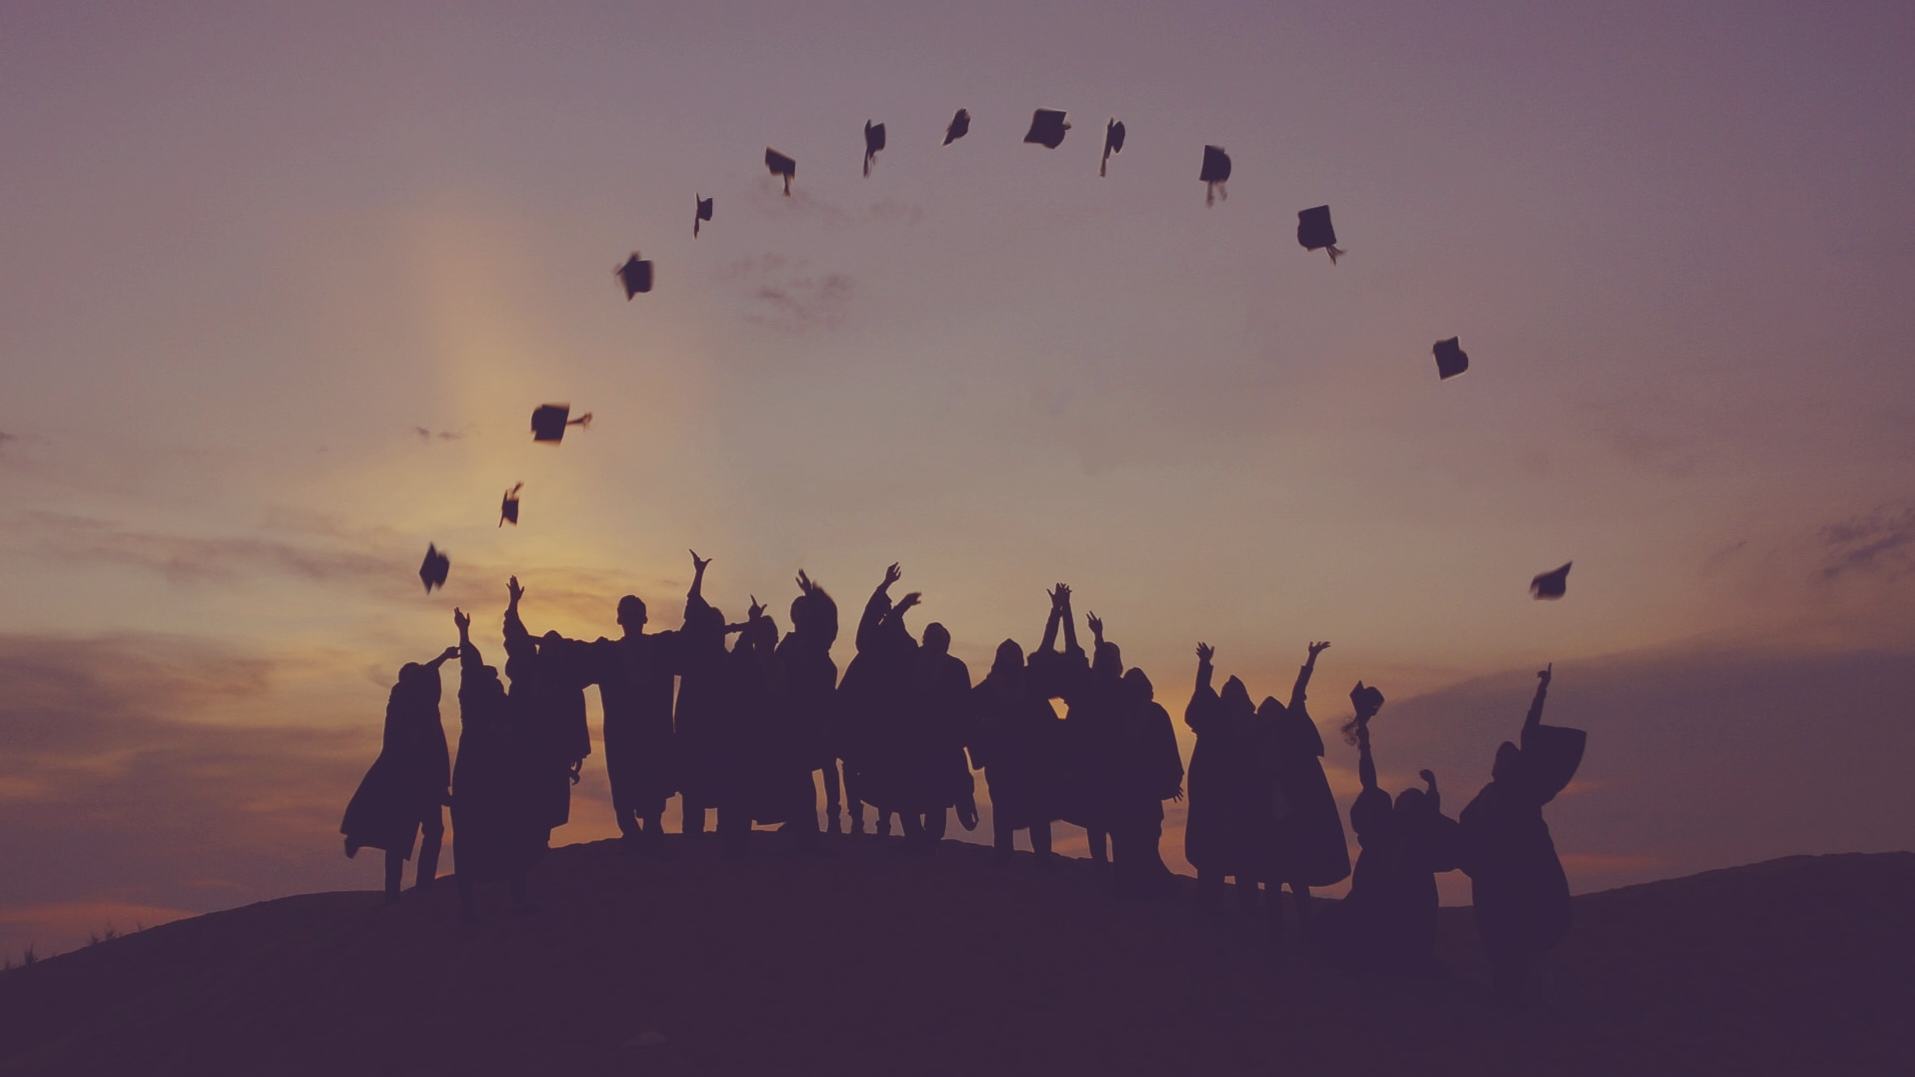 Silhouettes of students in graduation cap and gowns